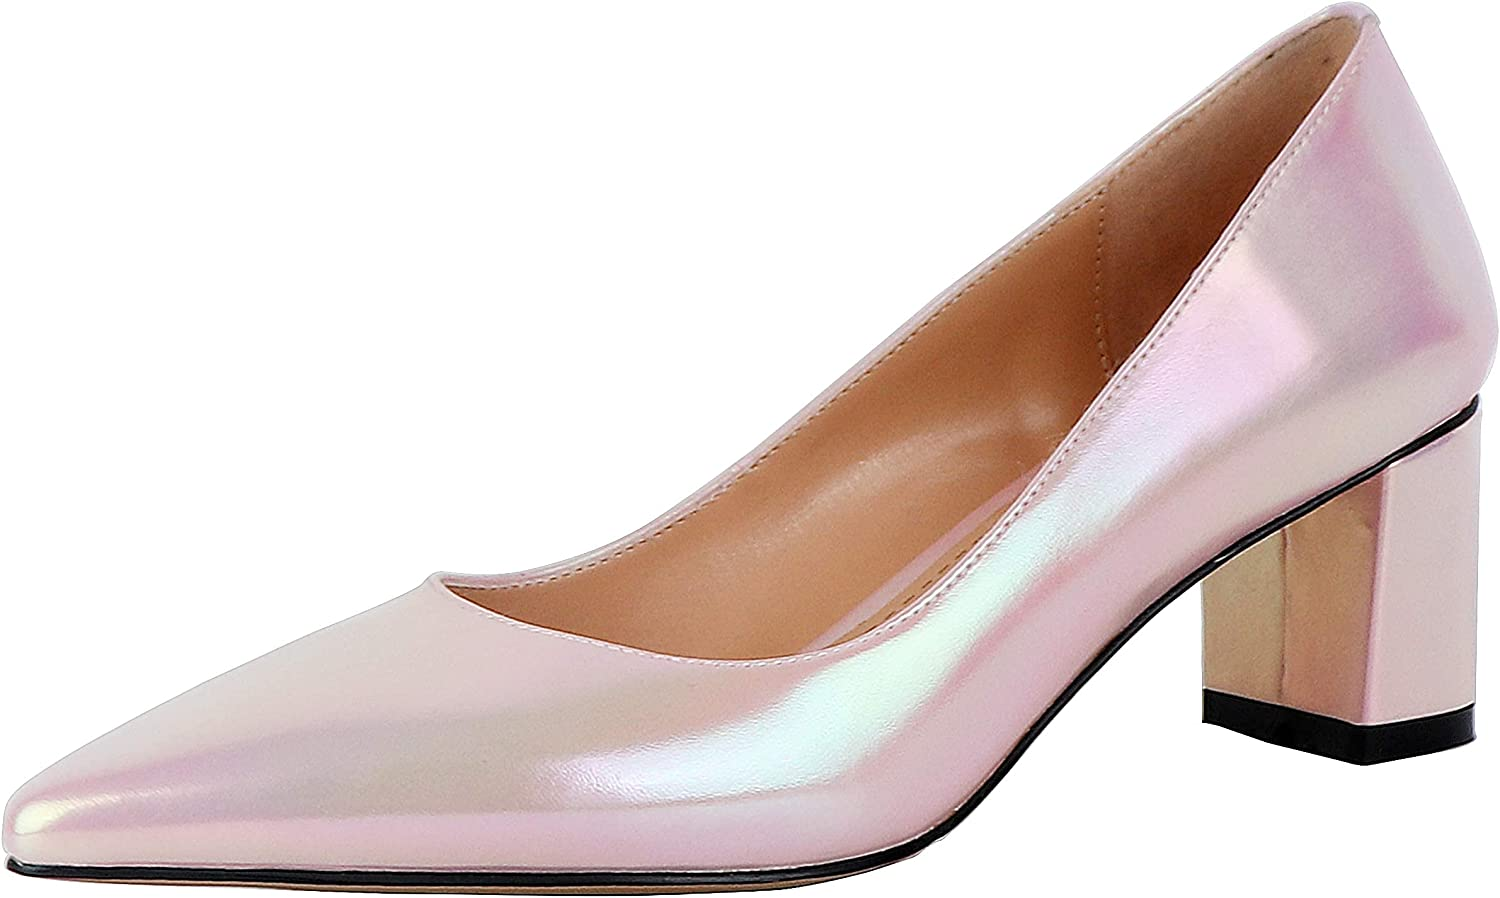 SOPHITINA Women's Max 77% OFF Block Low We OFFer at cheap prices Heel Sexy Pumps Shiny Pearl Pointed